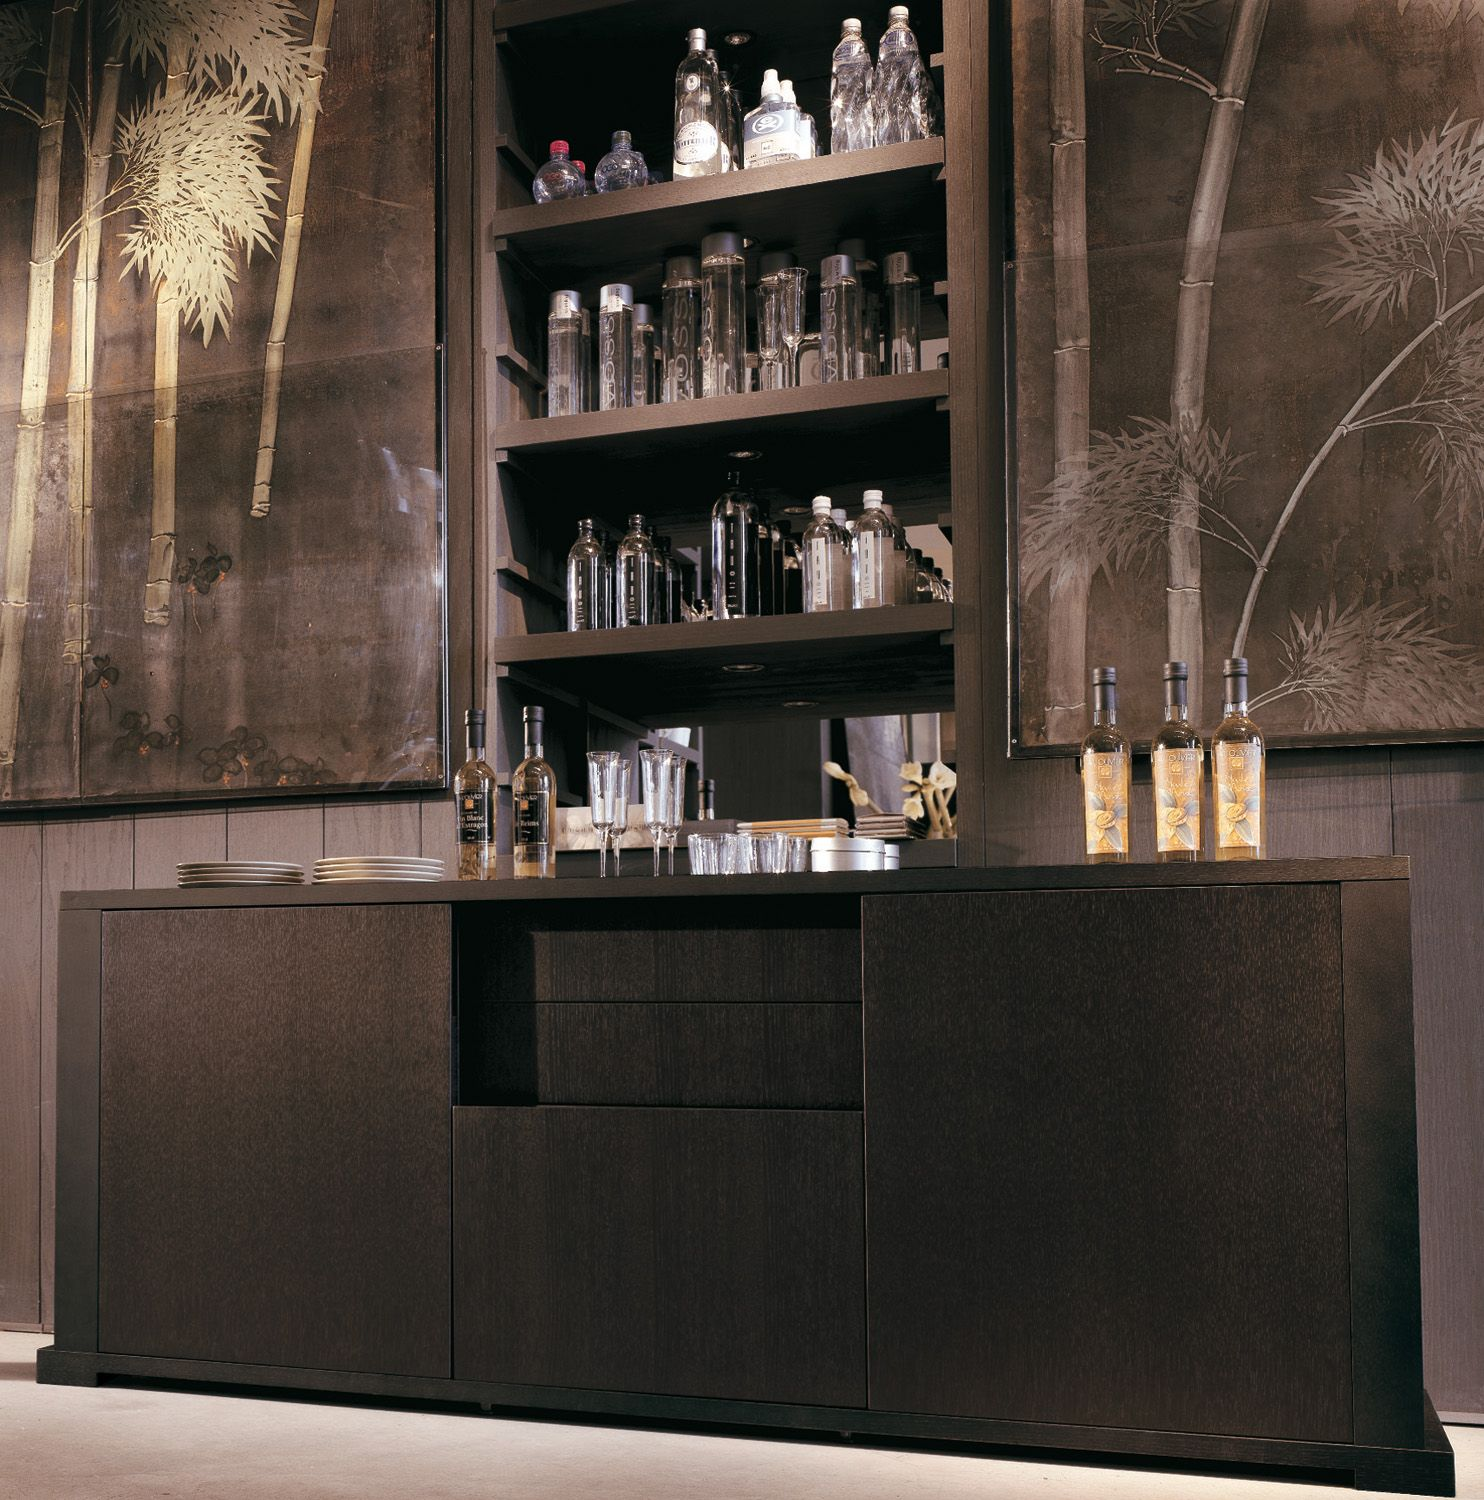 Porada arredi srl interiors restaurant bar house for Porada arredi srl